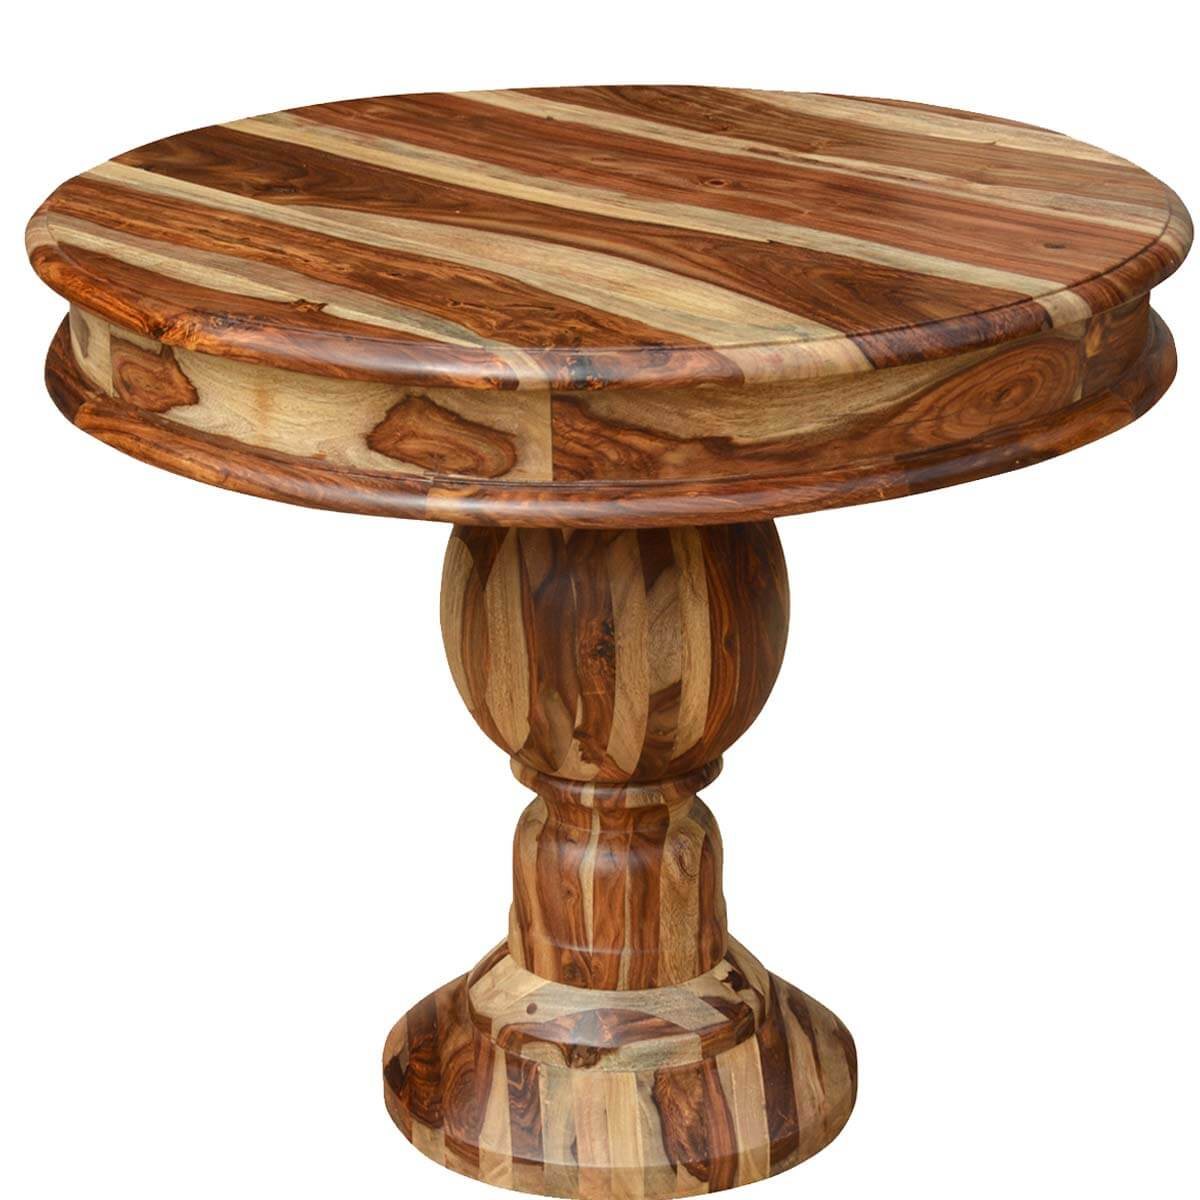 Fallas Solid Solid Wood 35 Round Pedestal Dining Table